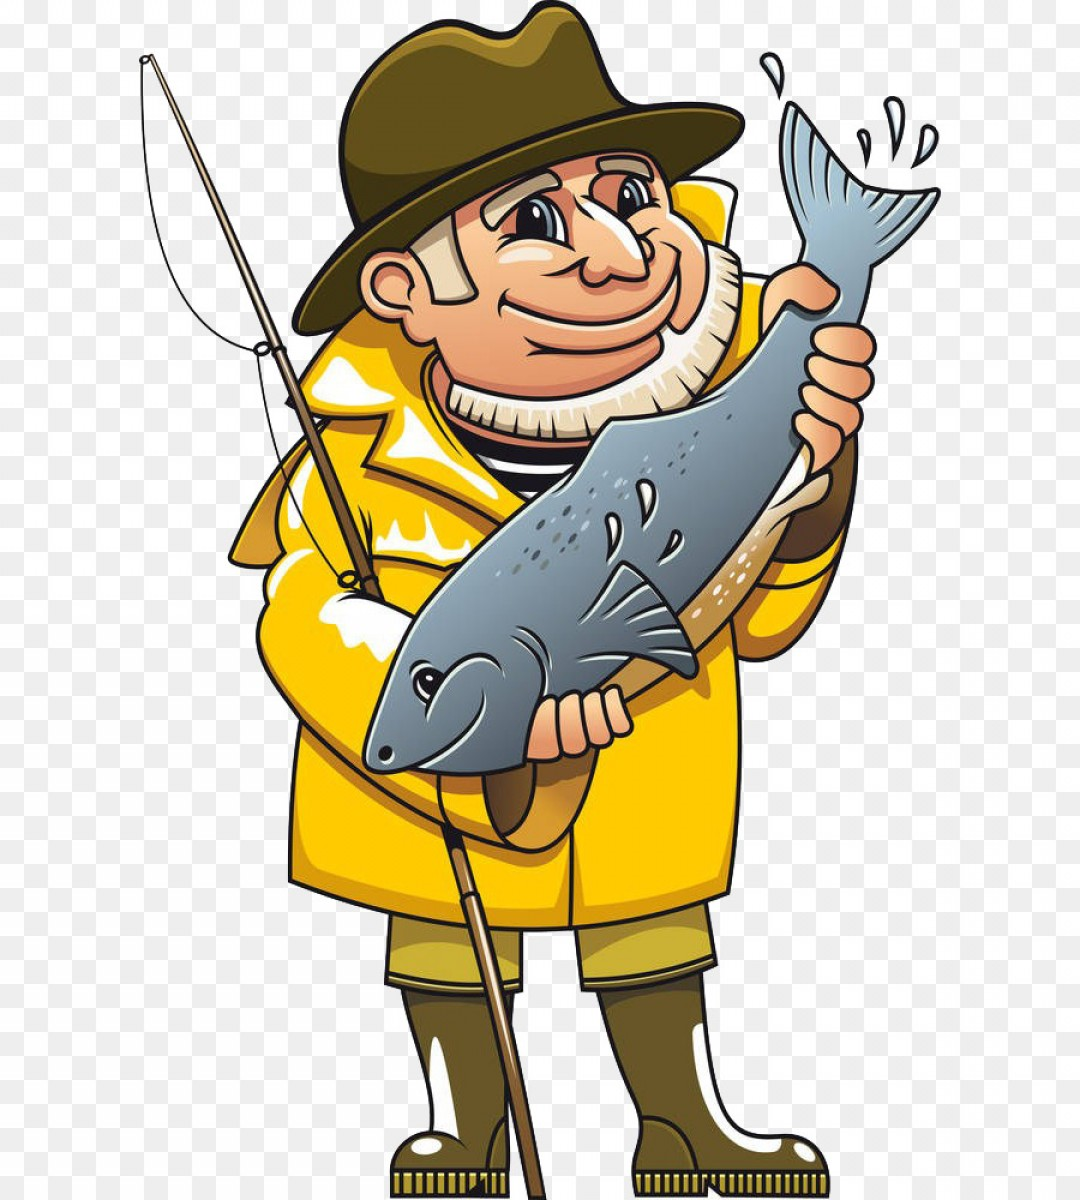 Fisherman clipart clip art. Png royalty free fishing